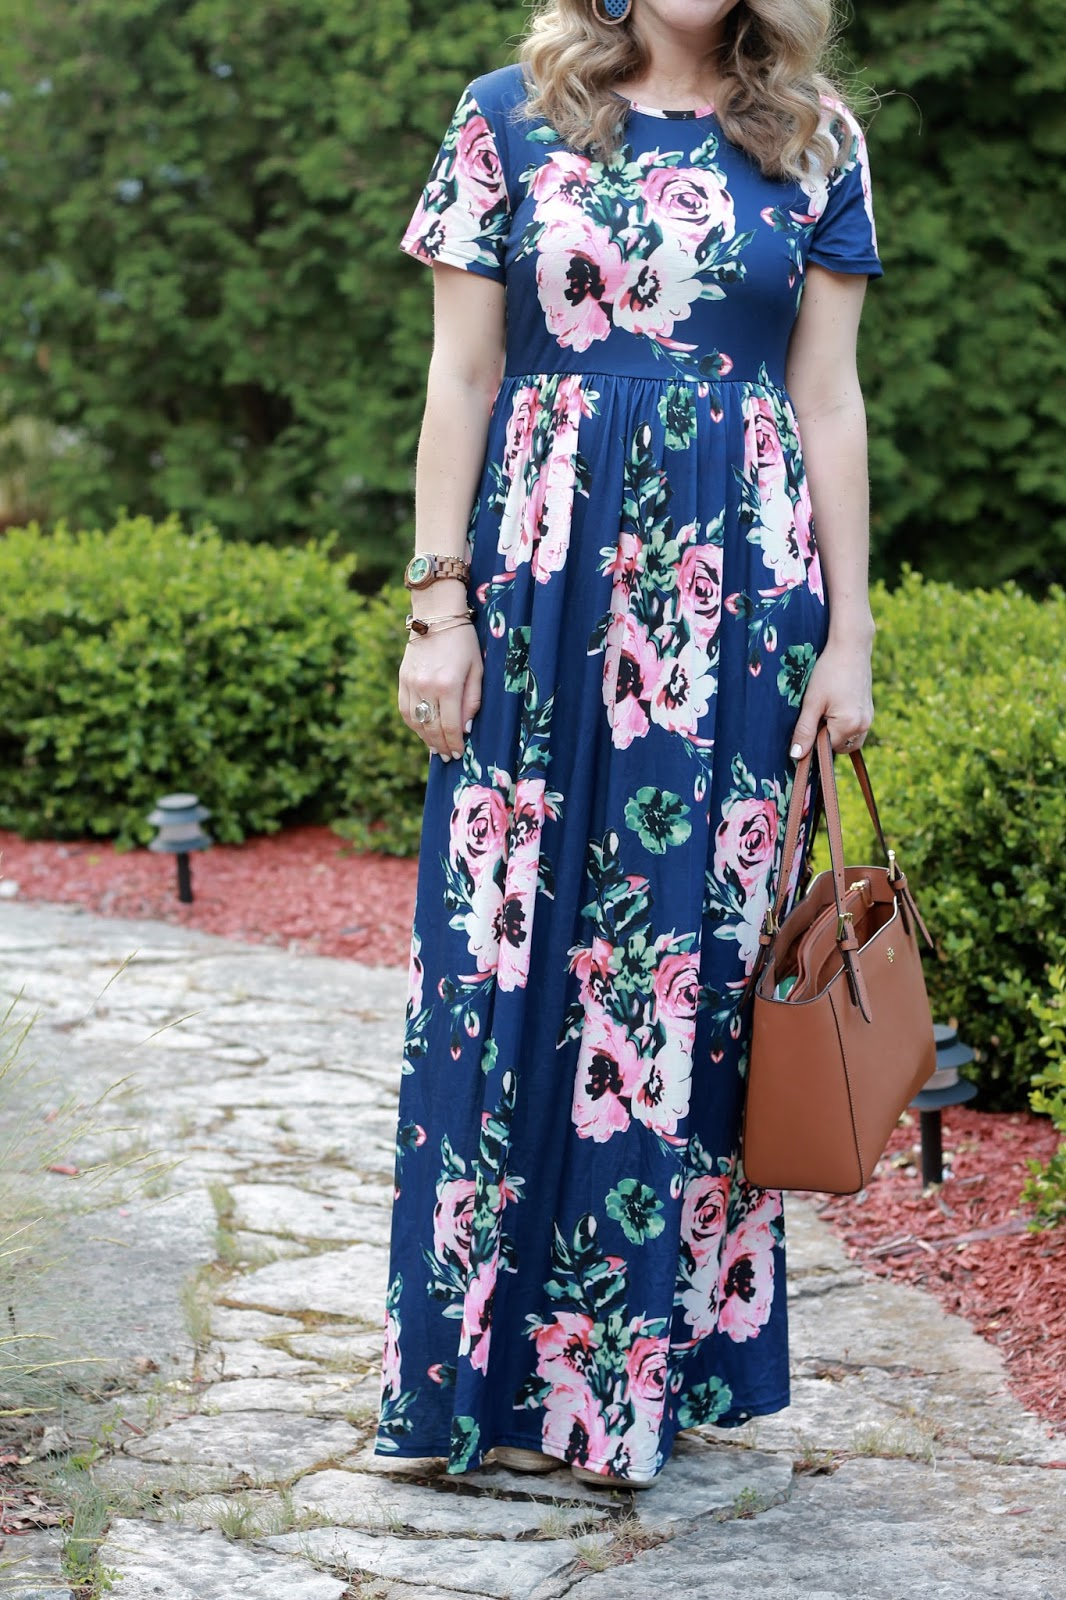 short sleeved blue floral maxi dress, wooden statement earrings, Tory Burch tote, second trimester maternity outfit